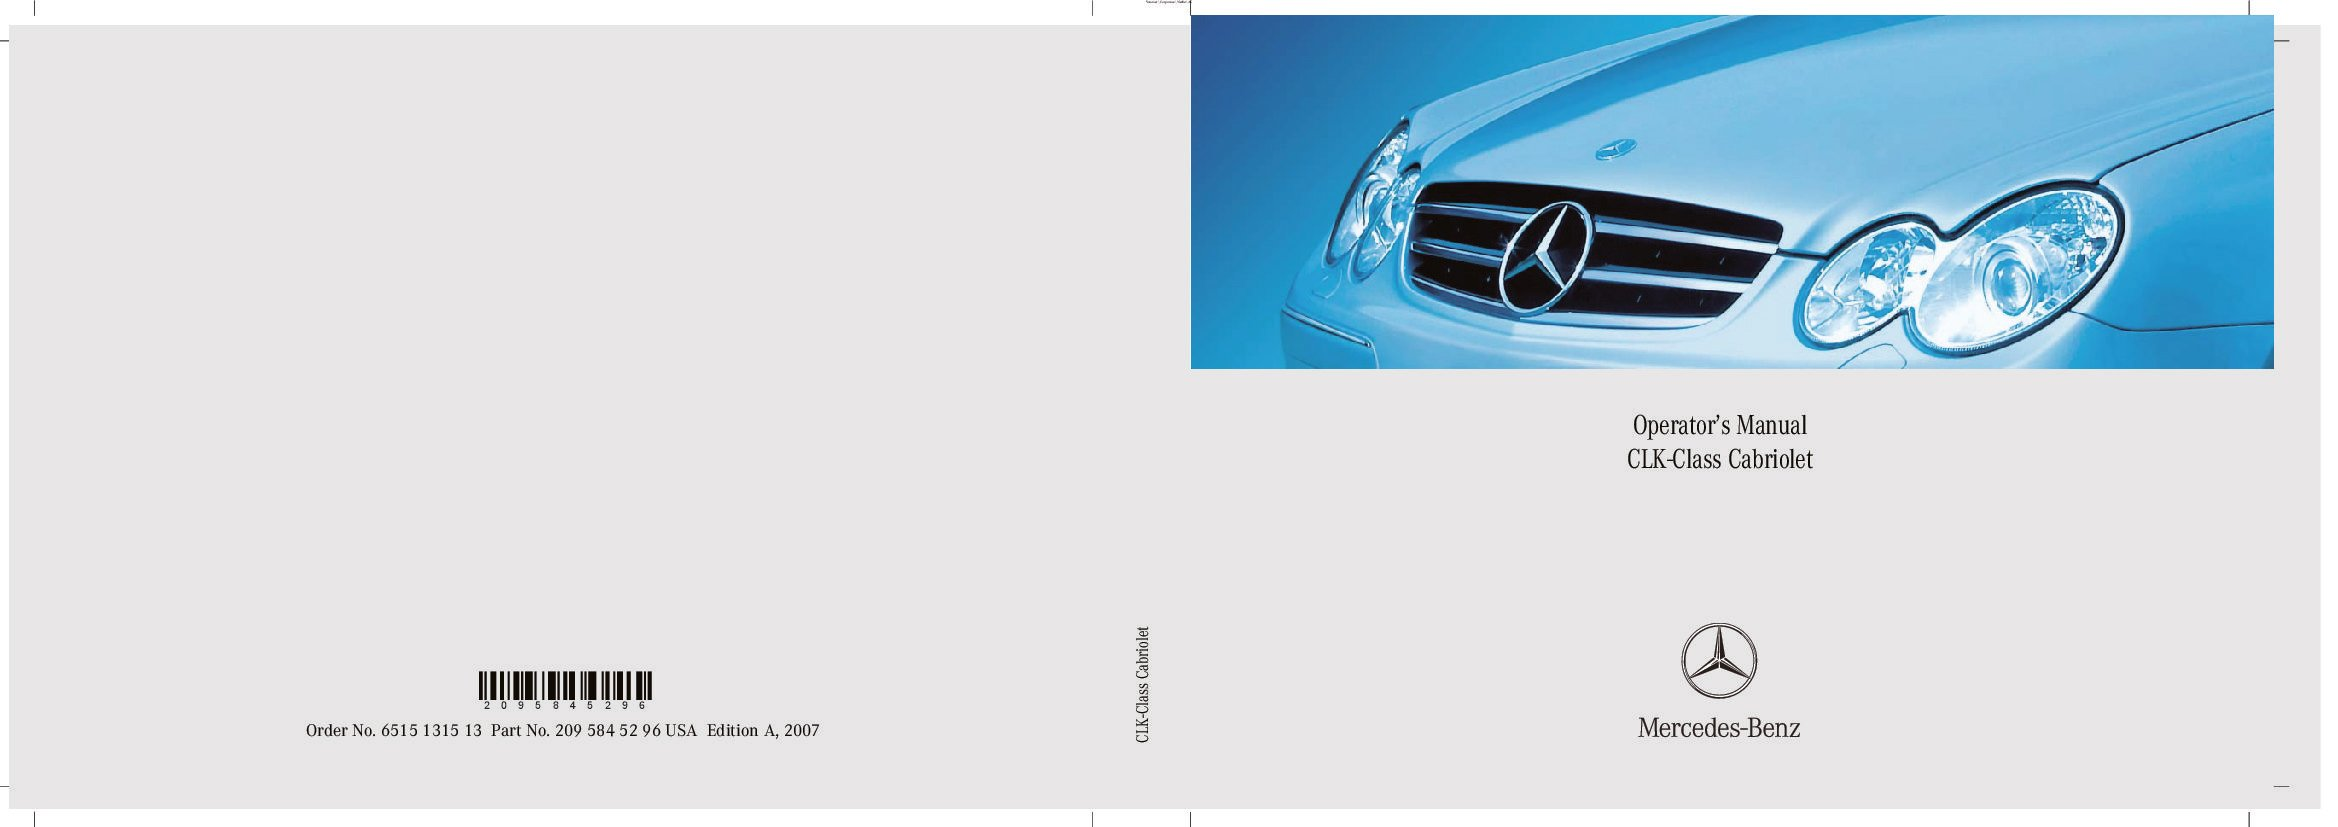 Mercedes clk 200 owners manual pdf fiat world test drive for 2013 mercedes benz e350 owners manual pdf